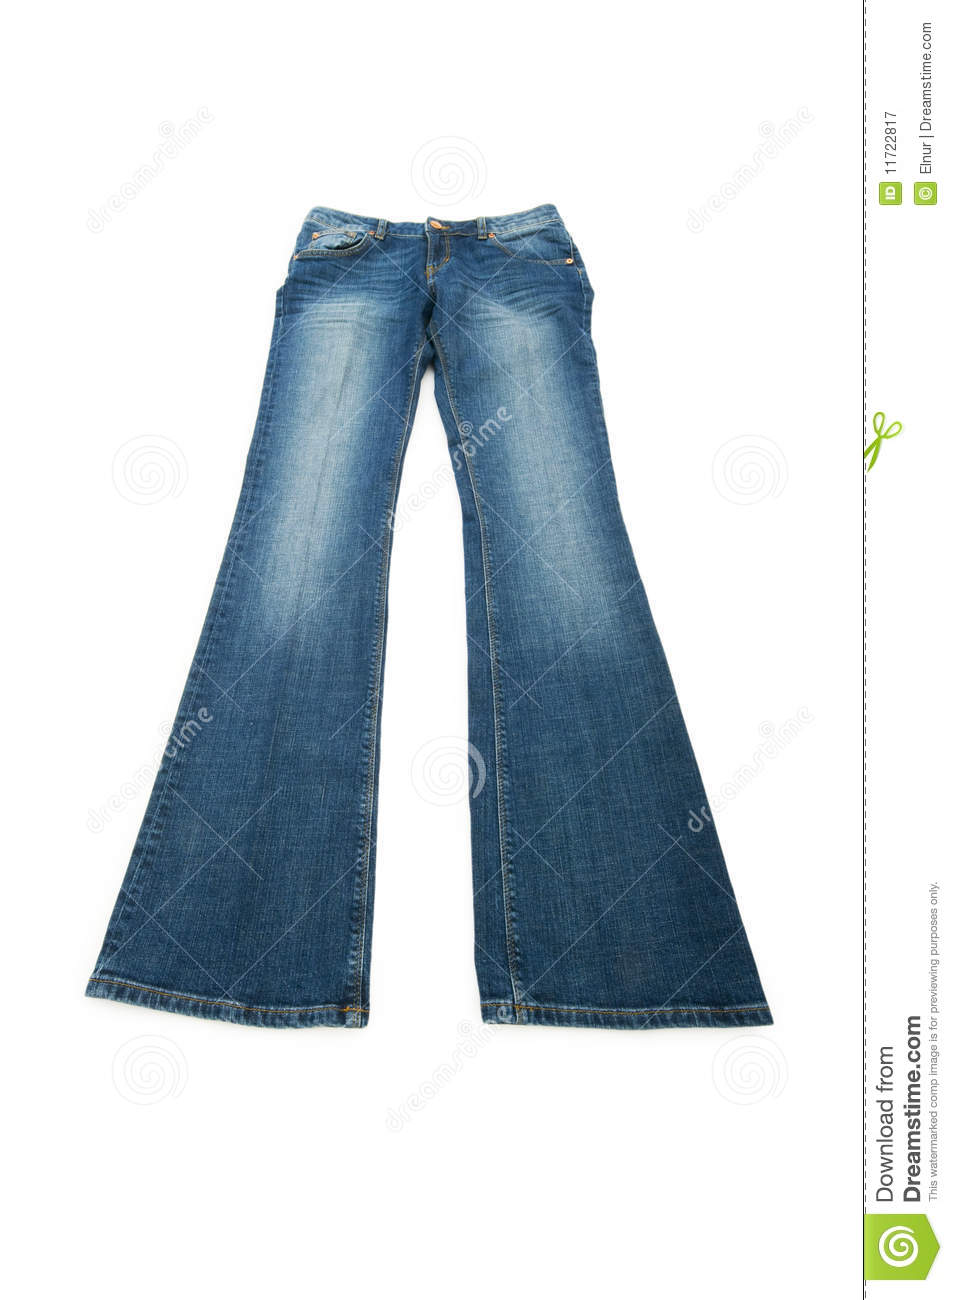 a pair of jeans All i need is jesus and a good pair of jeans: the tired supergirl's search for grace [susanna foth aughtmon, mark batterson] on amazoncom free shipping on qualifying offers women everywhere feel pressured to have perfect christian lives, perfect family lives, and to look perfect in their jeans.